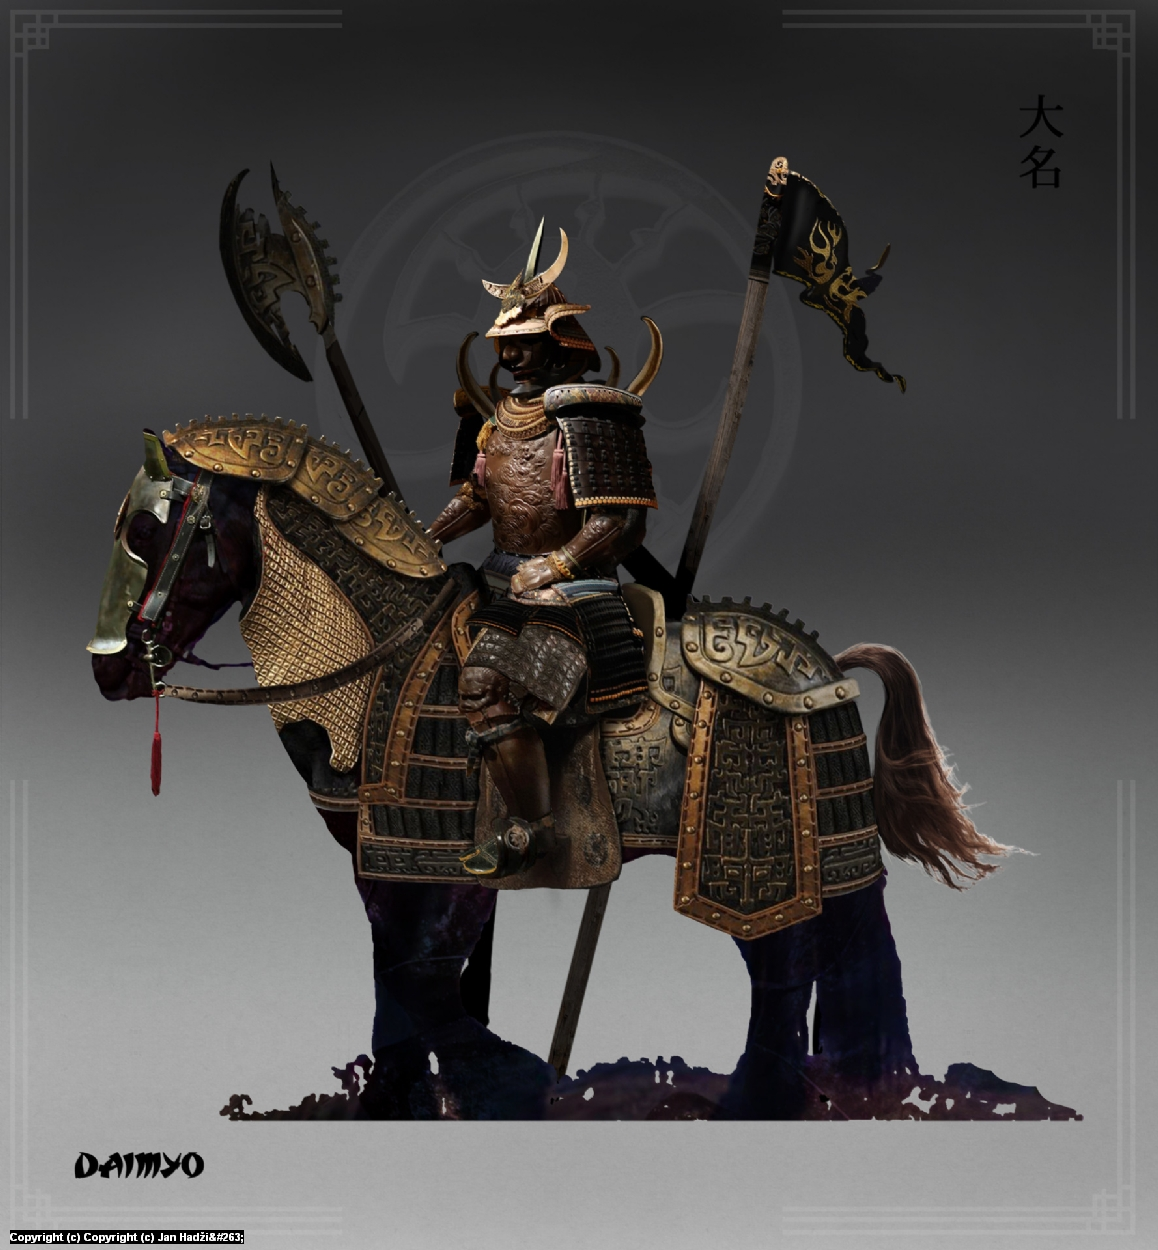 Daimyo Artwork by Jan  Hadzic